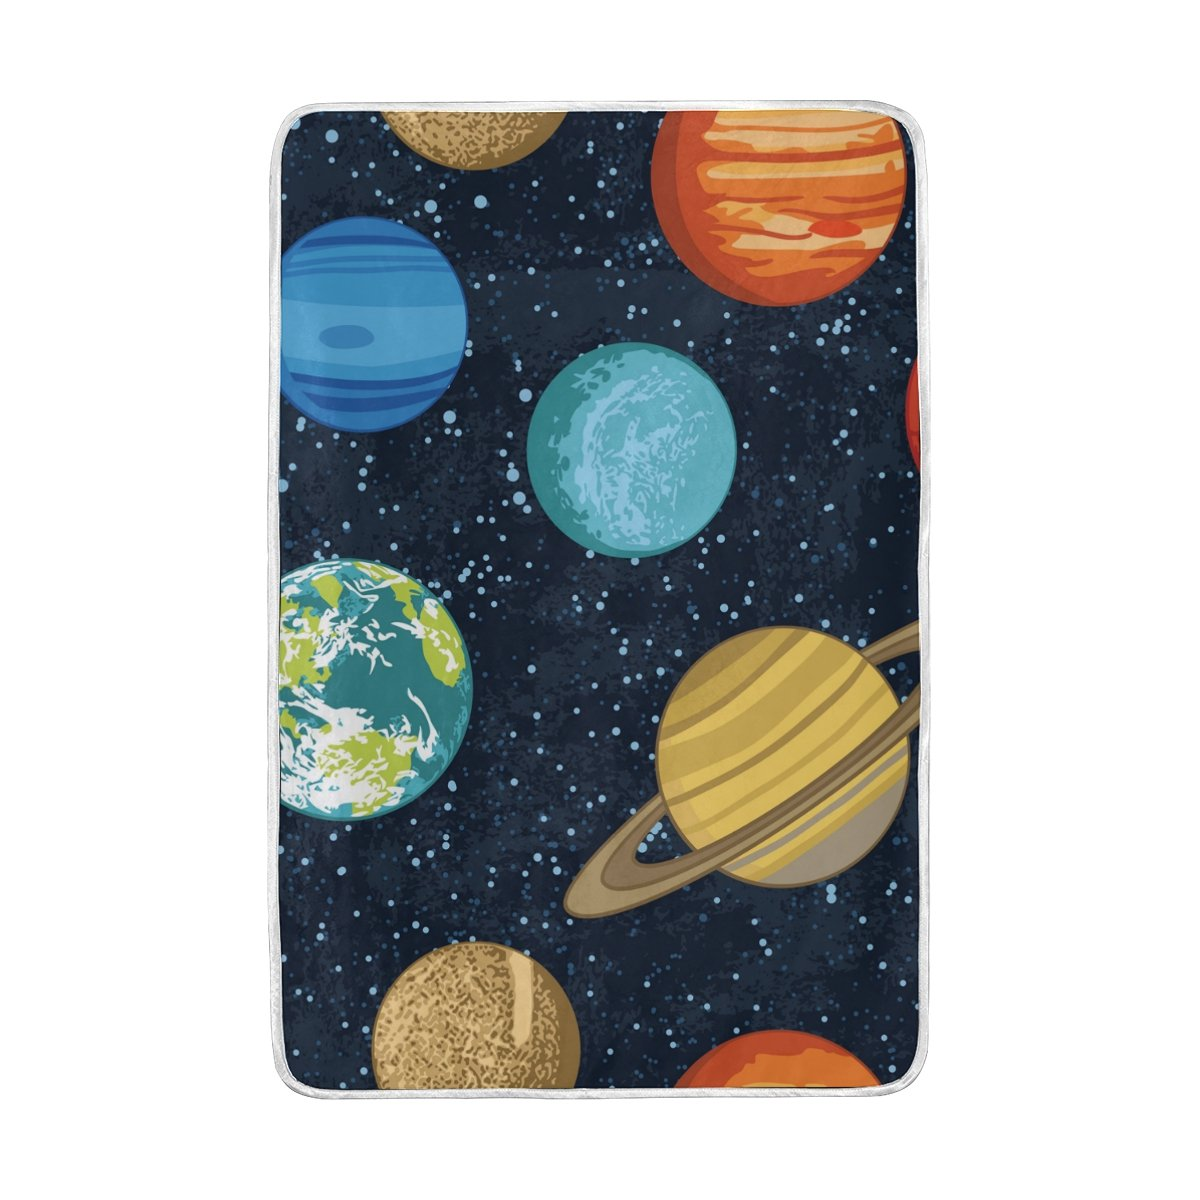 ALAZA Solar System Planets Universe Stars Blanket Luxury Throw Personalized Stylish Fuzzy Soft Warm Lightweight Blanket for Bed Counch All Season Unisex Adult Men Women Boys Girls 60x90 inches